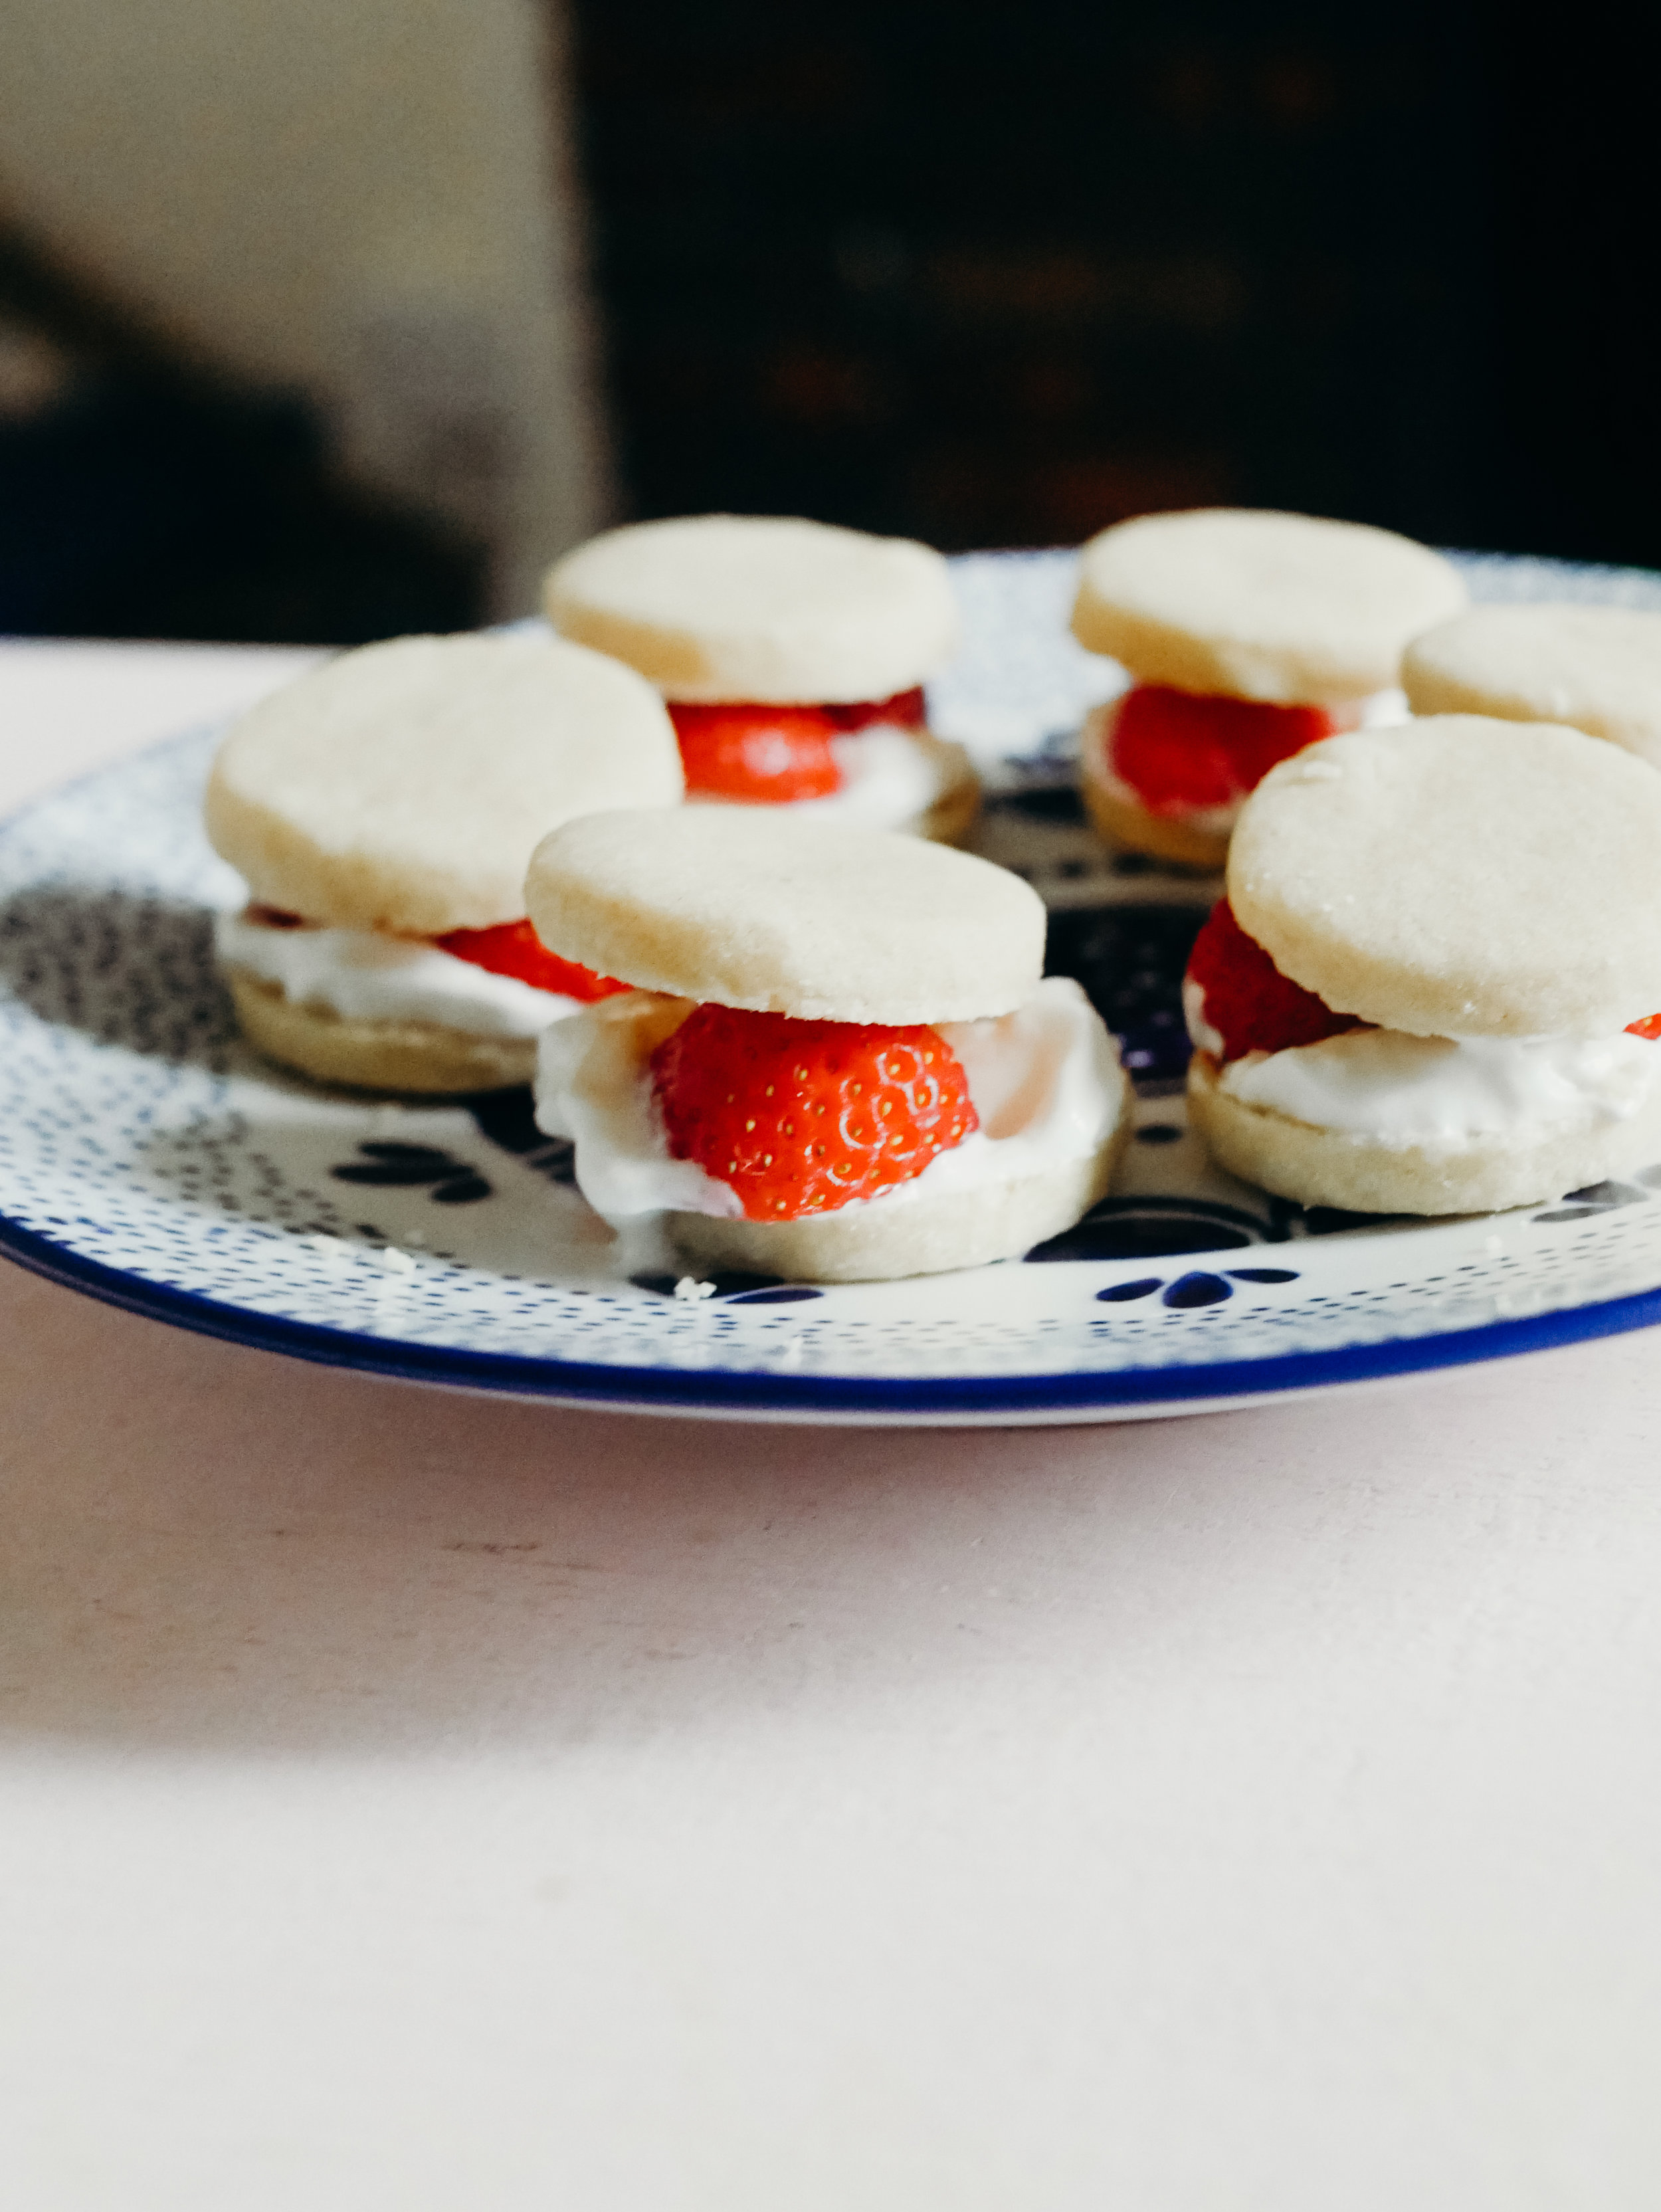 STRAWBERRIES & CREAM SHORTBREAD SANDWICHES - Luke whipped up these little shortbread cookies with this own 3-2-1 recipe of flour, butter, and sugar. (He used 150g of flour.) He filled them with whipped cream and sliced strawberries. They were delicious and so cute!